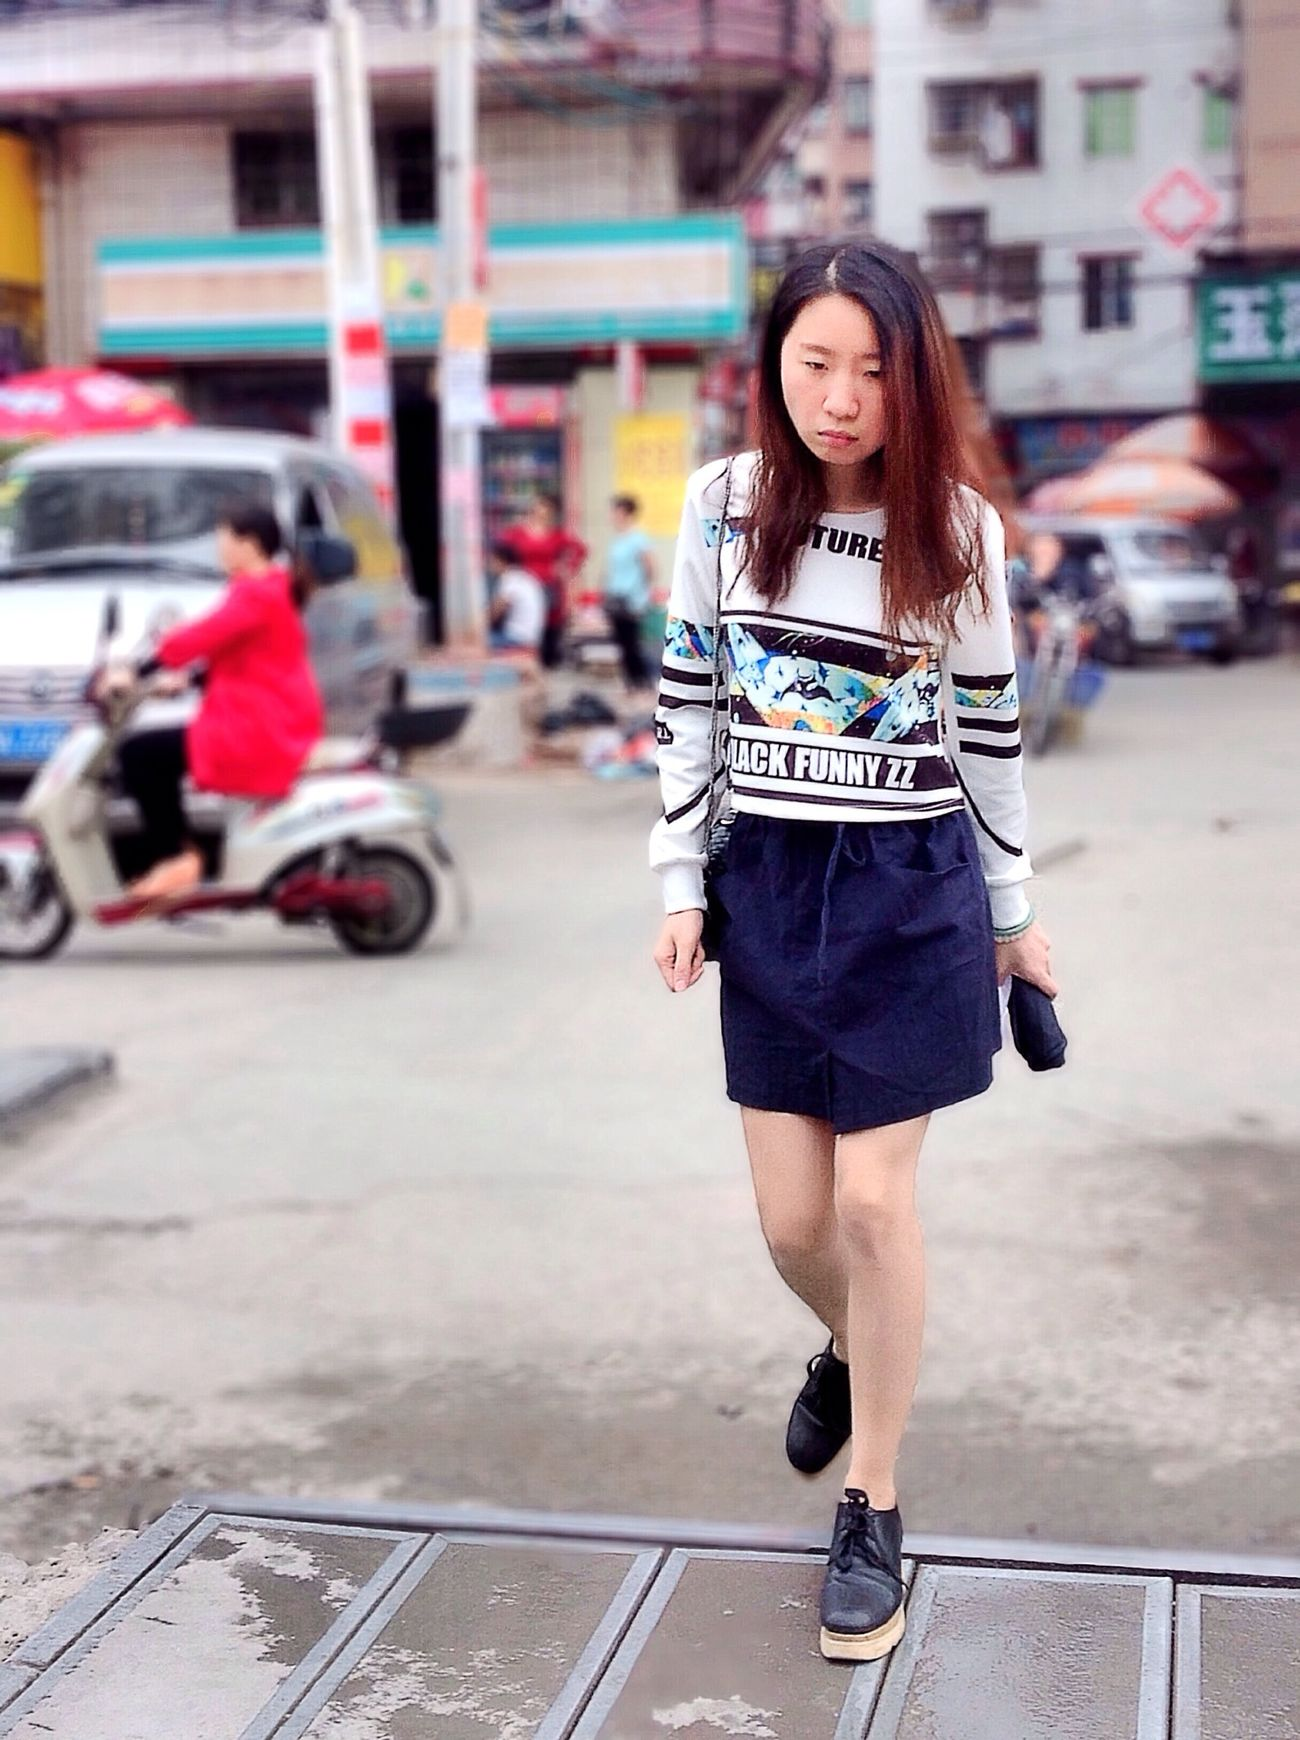 She walked over to me, holding a jujube, walking and eating, discovered that I stop to look at her, shyly hid jujube, lower the head, and couldn't help but looked up and glanced at me a few eye, just like that, and I miss... Taking Photos Streetphotography EyeEm Best Shots People Girl Chinese Girl EyeEm China Well Turned Out